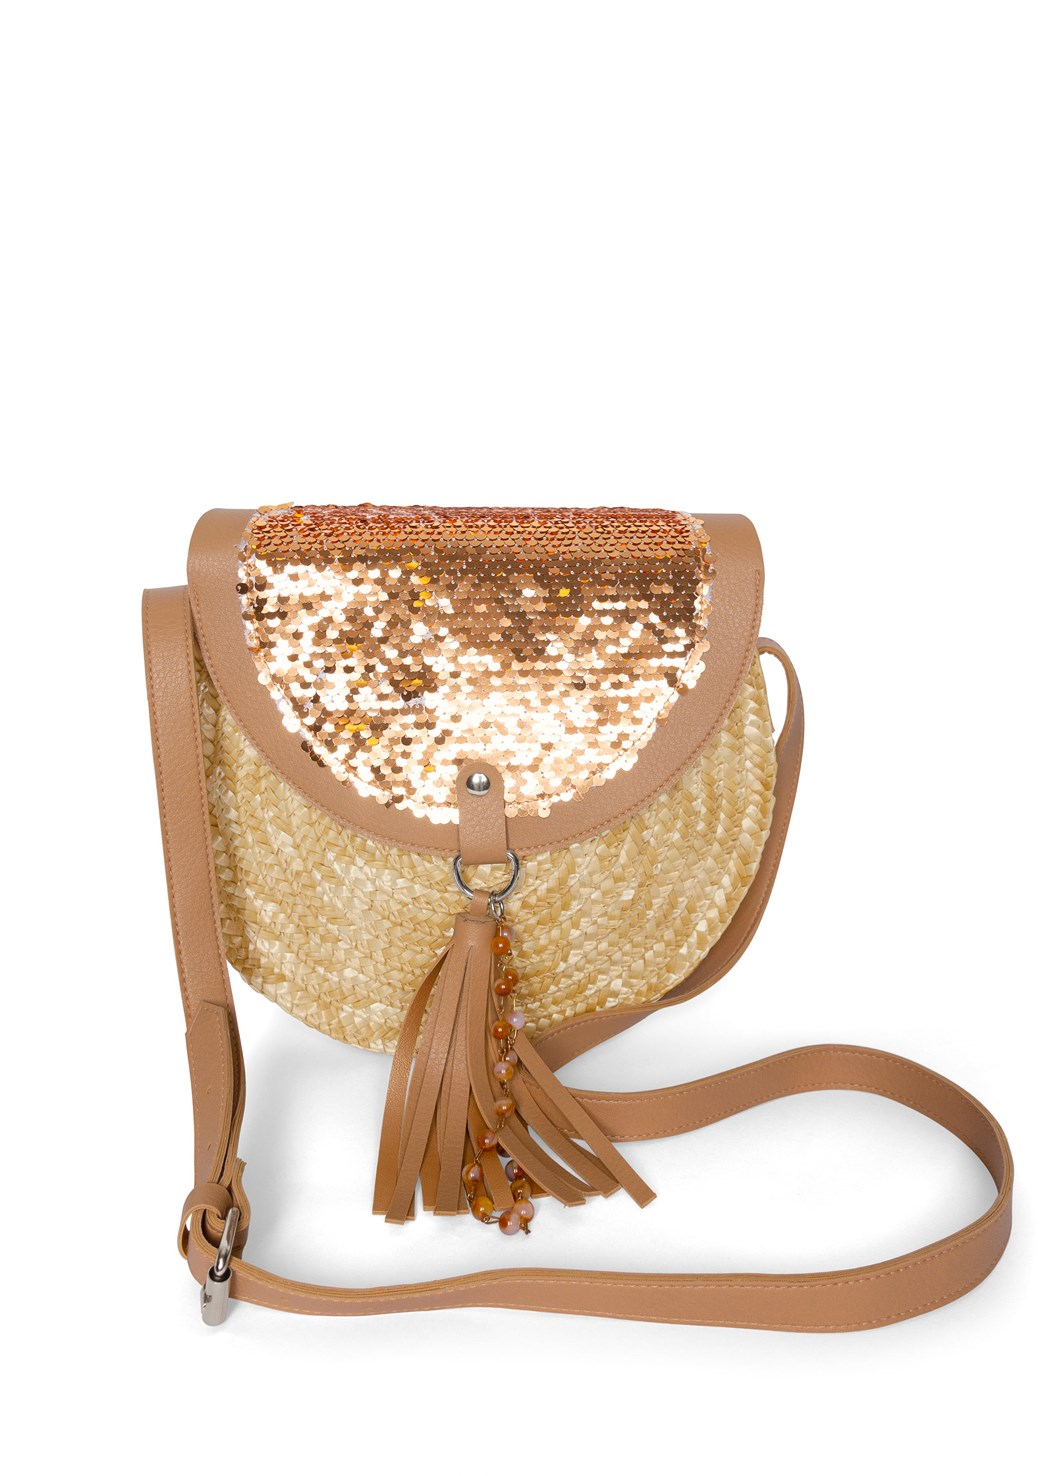 Sequin Straw Crossbody Bag,Pleated Ombre Grommet Top,Casual Bootcut Jeans,Turquoise Buckle Belt,Tassel Hoop Earrings